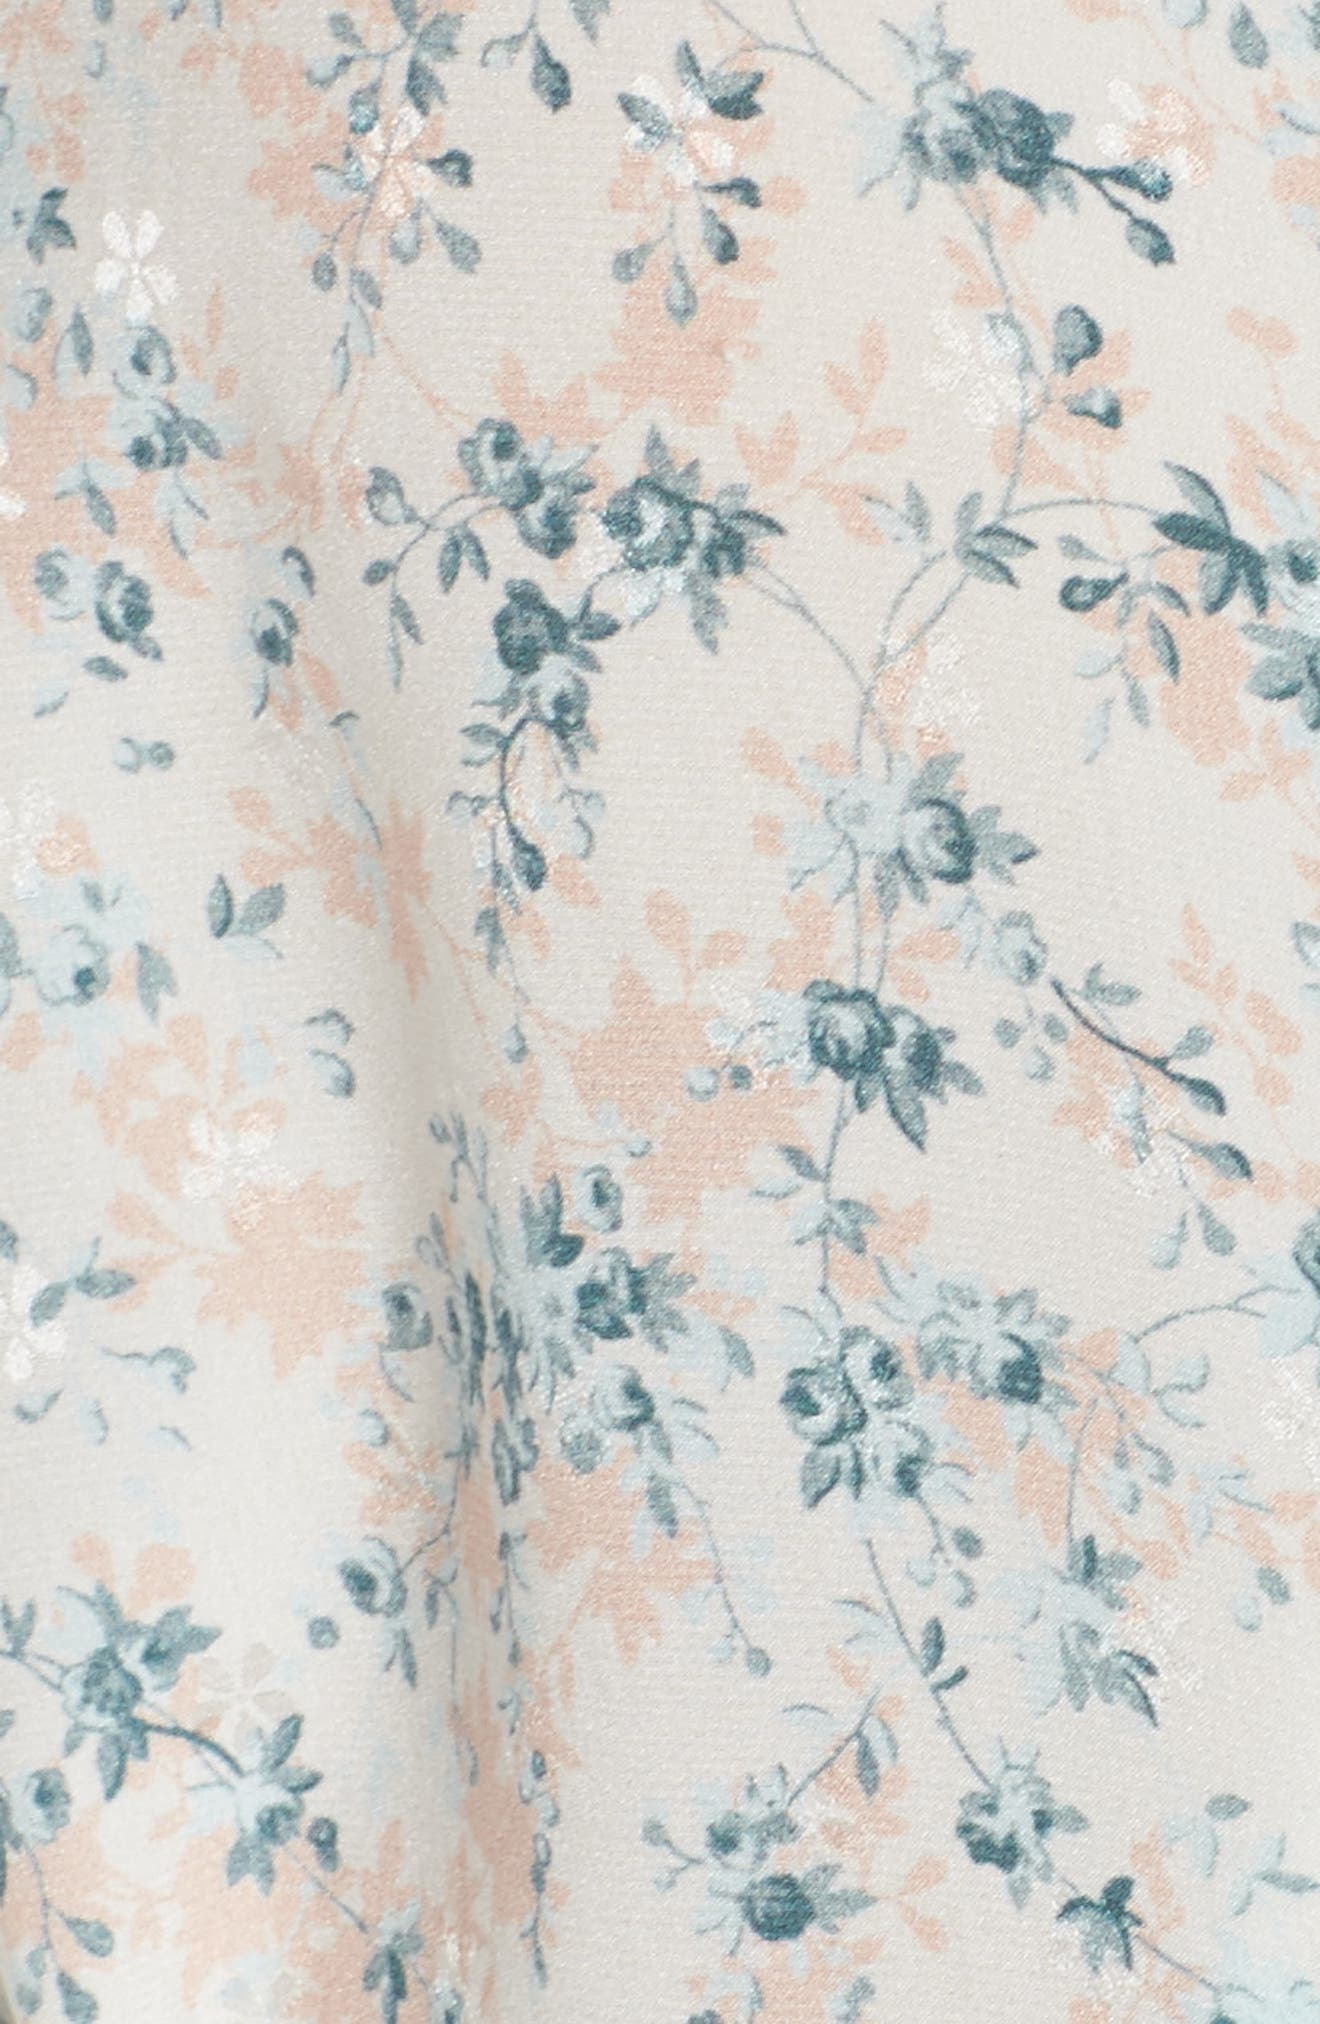 Lily Stretch Silk Short Robe,                             Alternate thumbnail 6, color,                             Ivory Floral Print